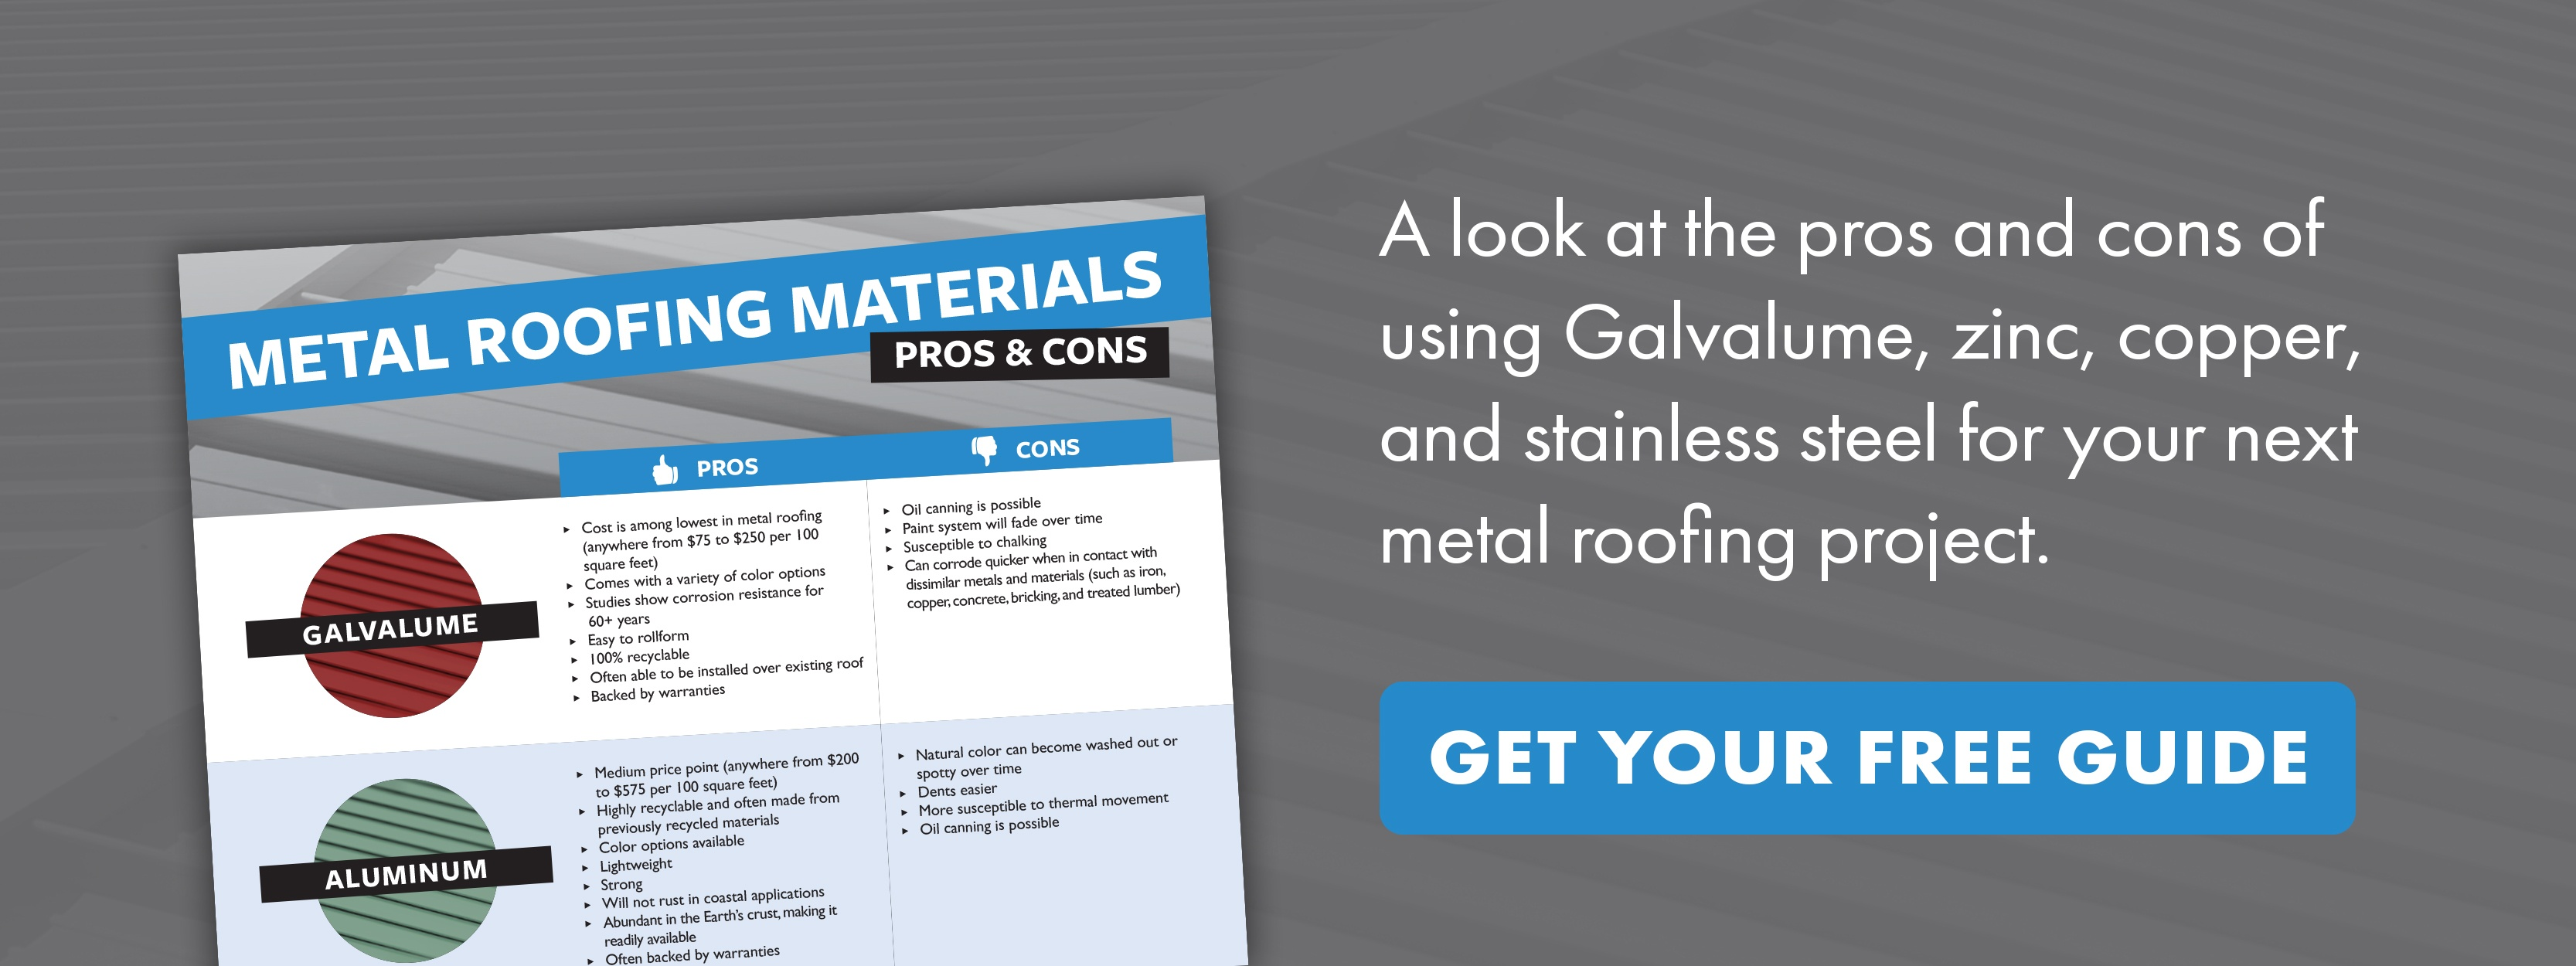 Metal Roofing Materials Pros & Cons Guide - Embed